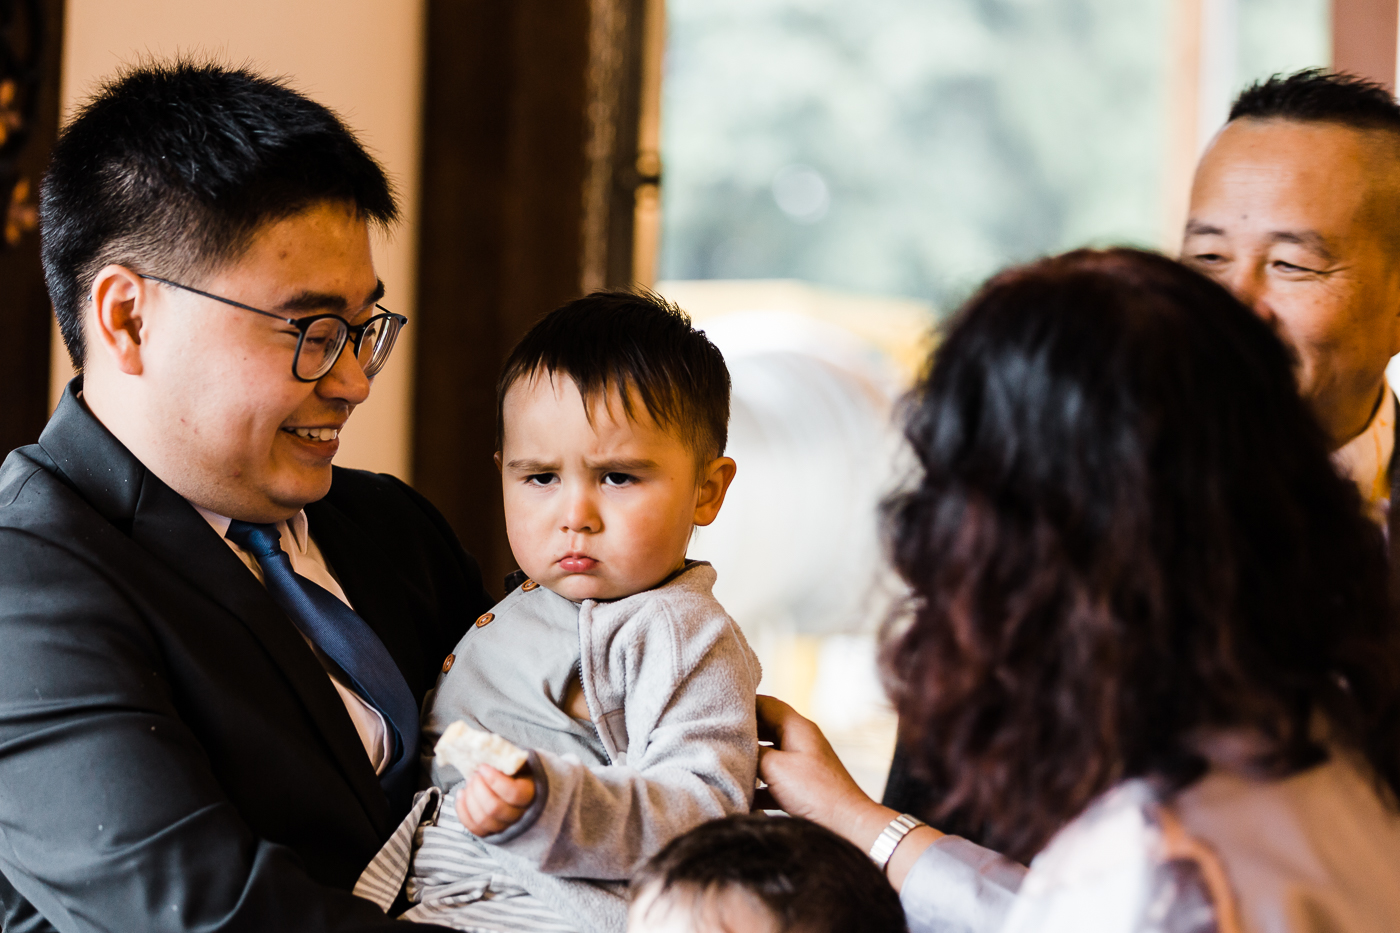 Grumpy kiddo at intimate Abbotsford wedding.